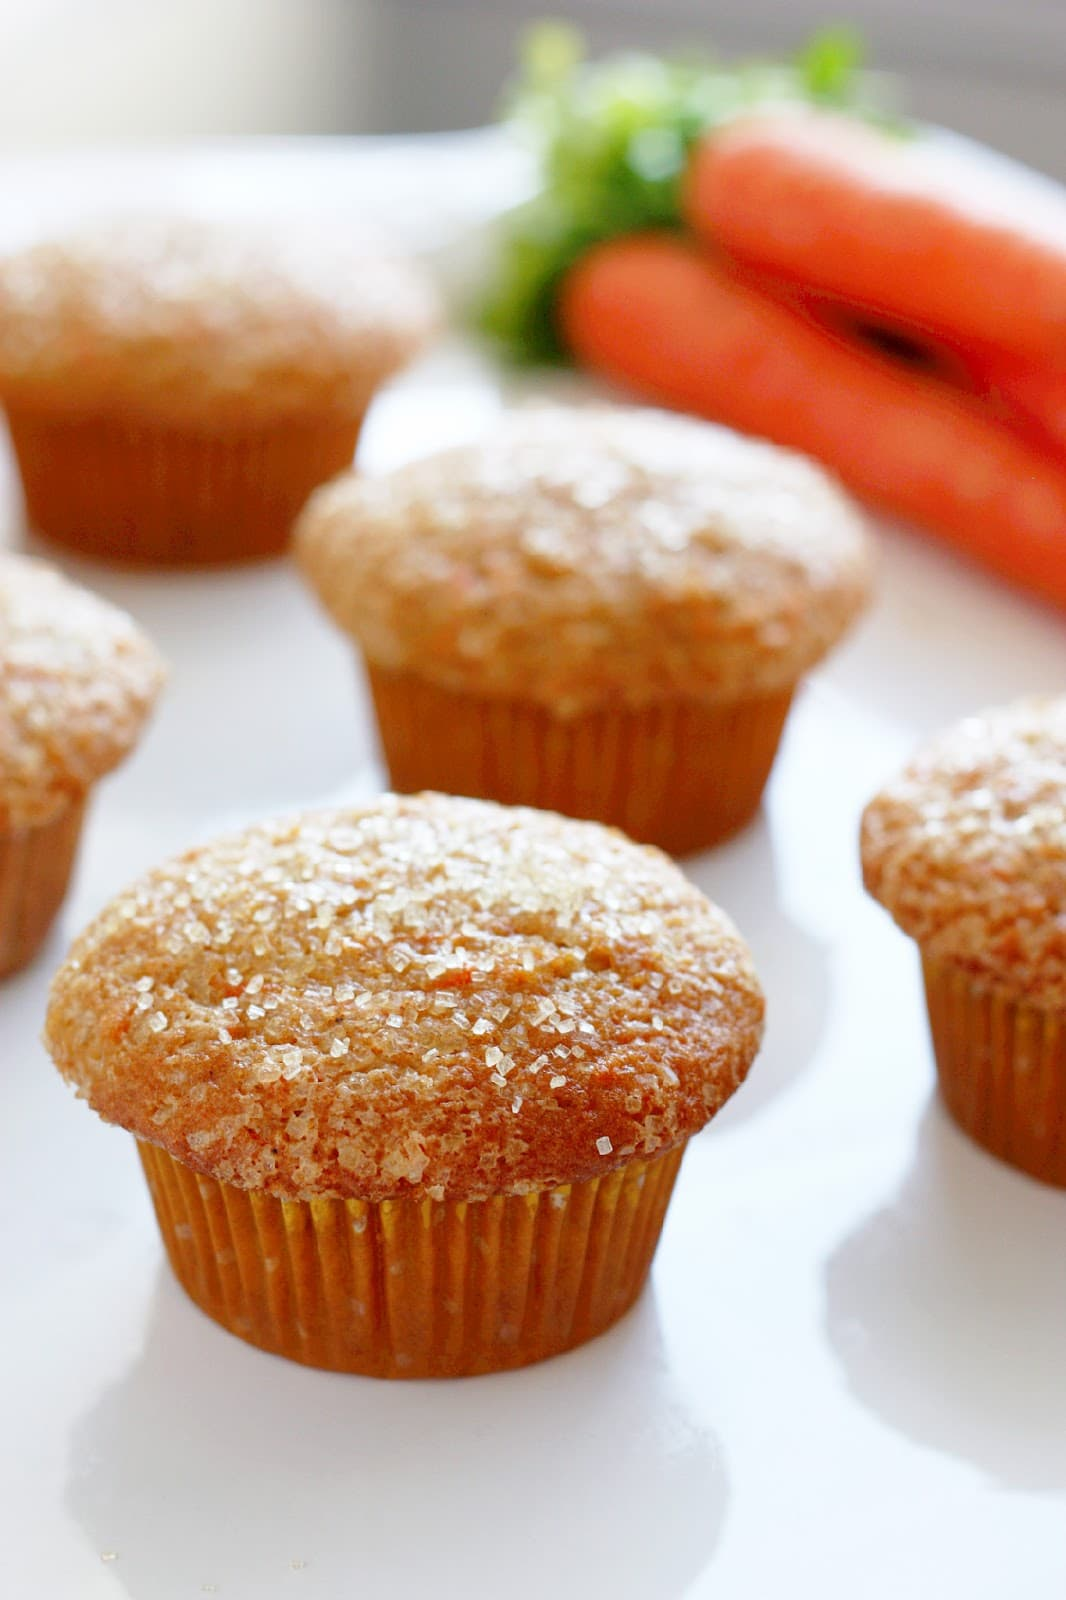 Cream Cheese Filled Carrot Cake Muffins Cooking Classy